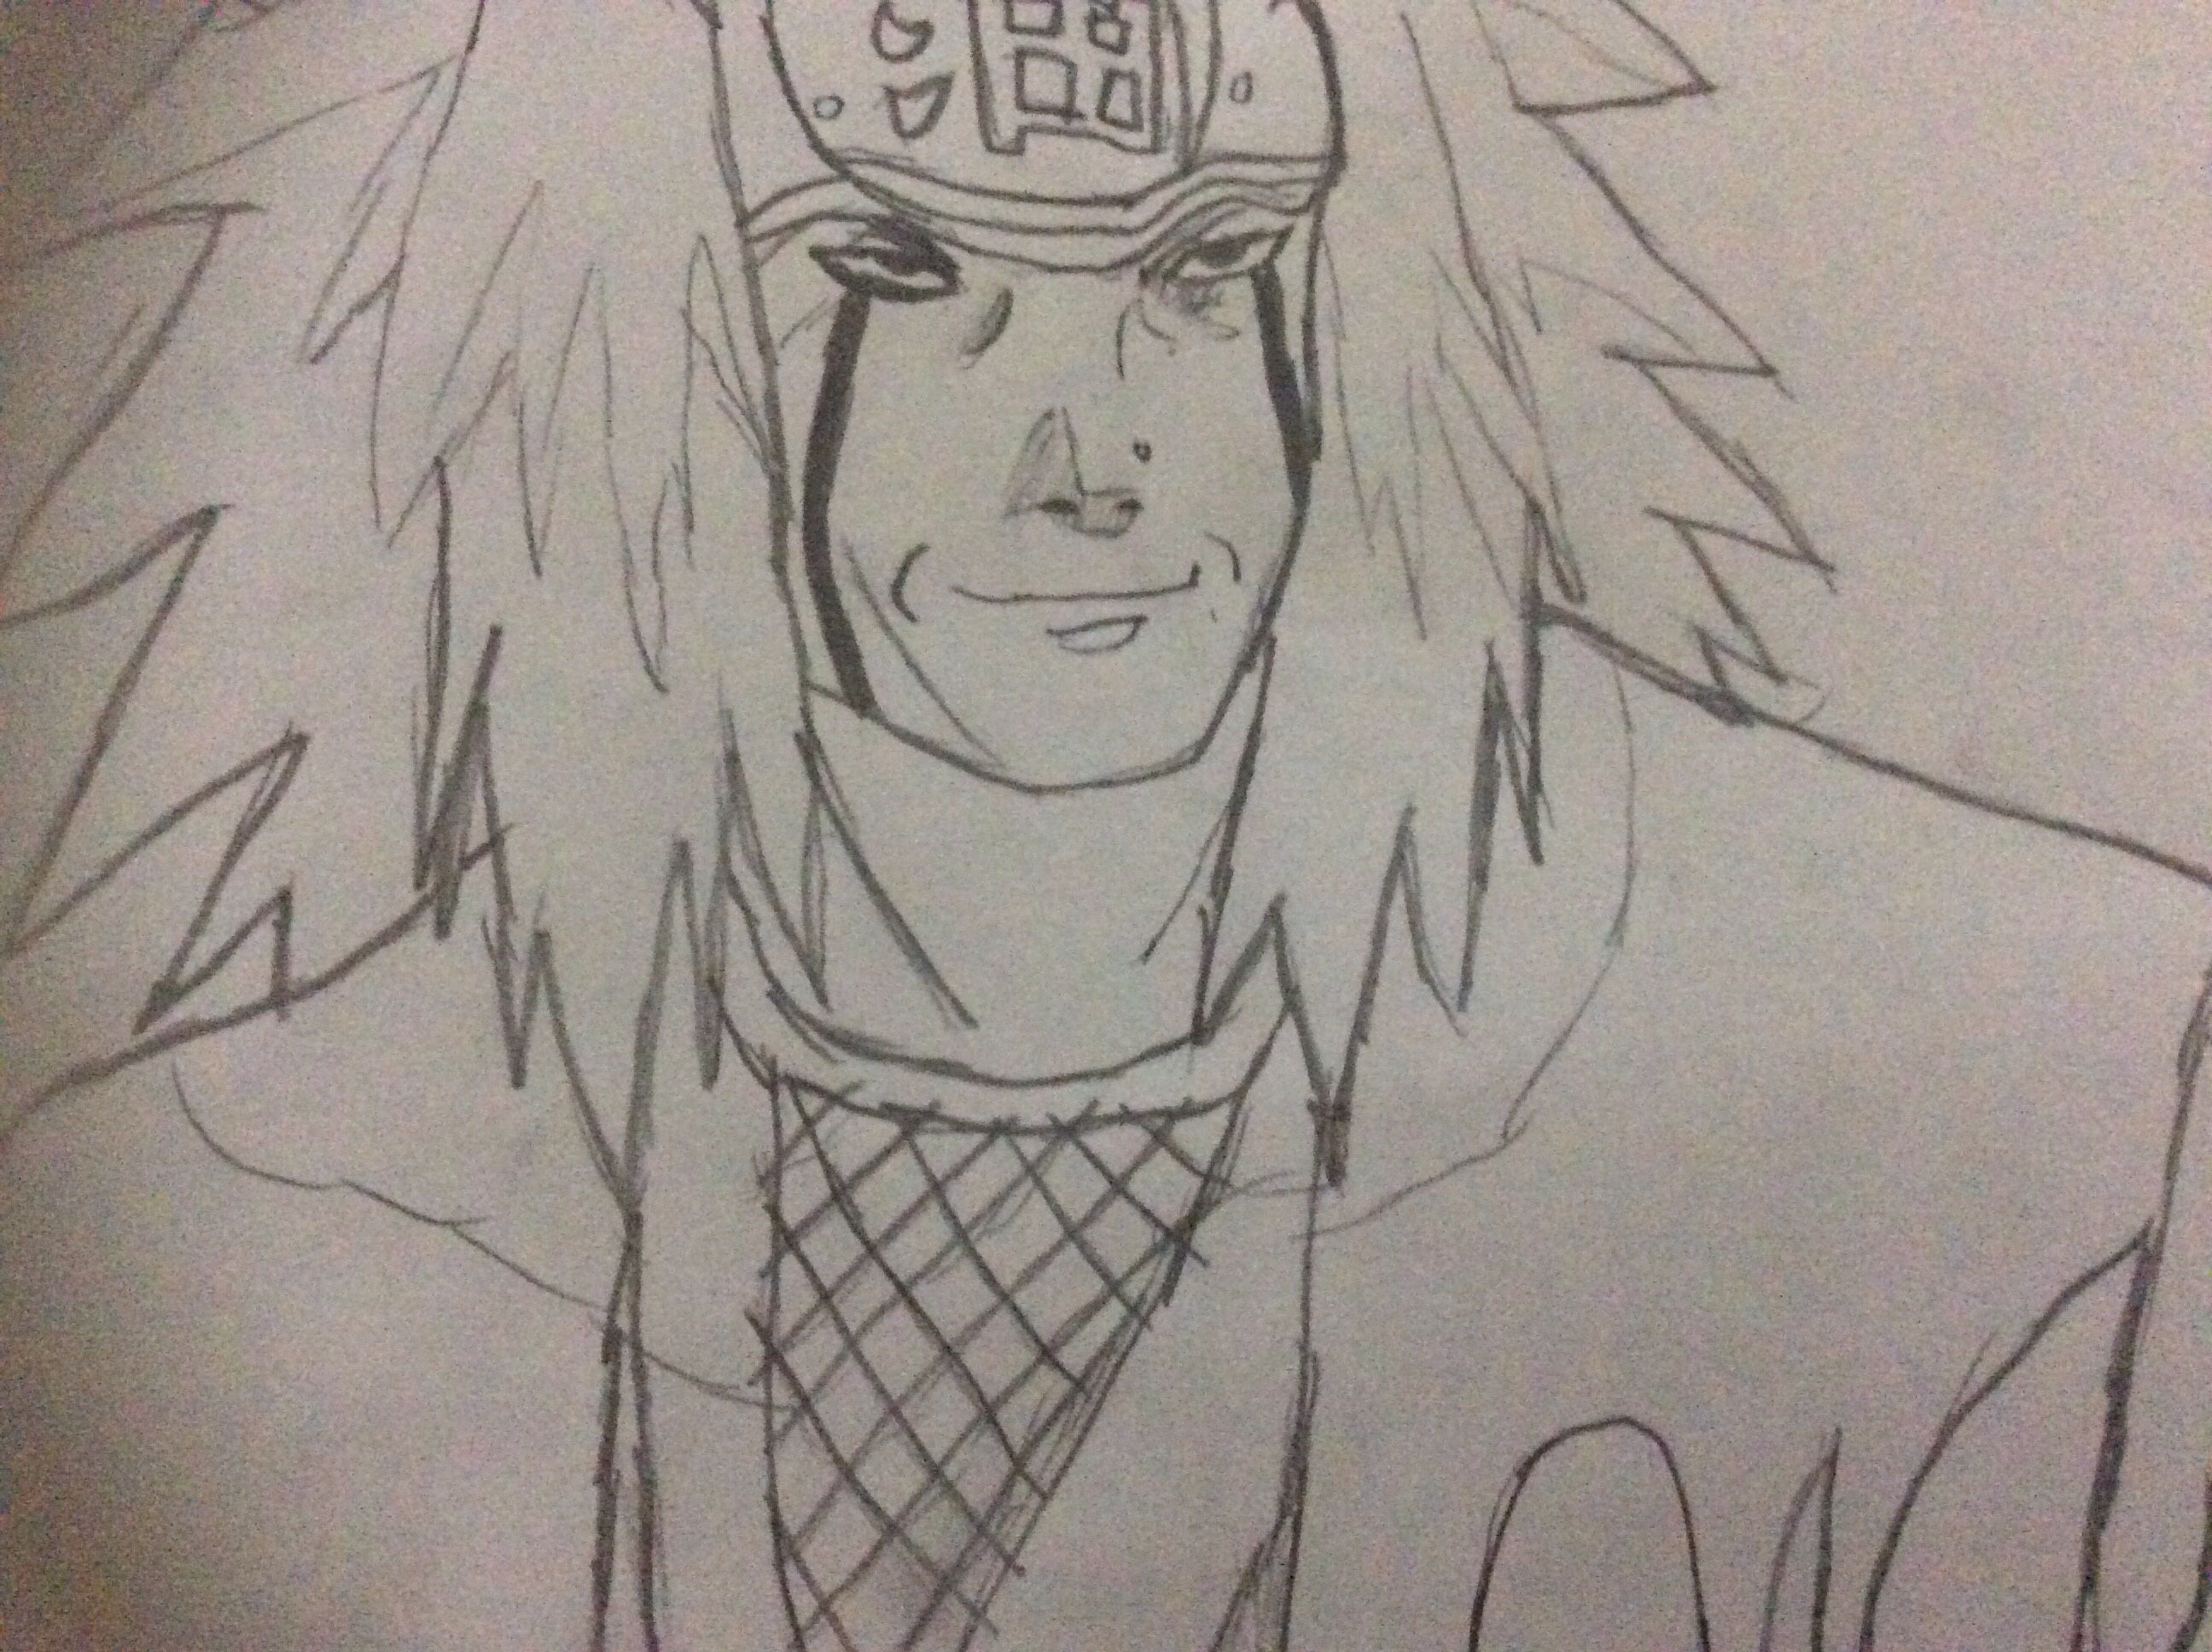 My drawing of the best naruto character pervy sage